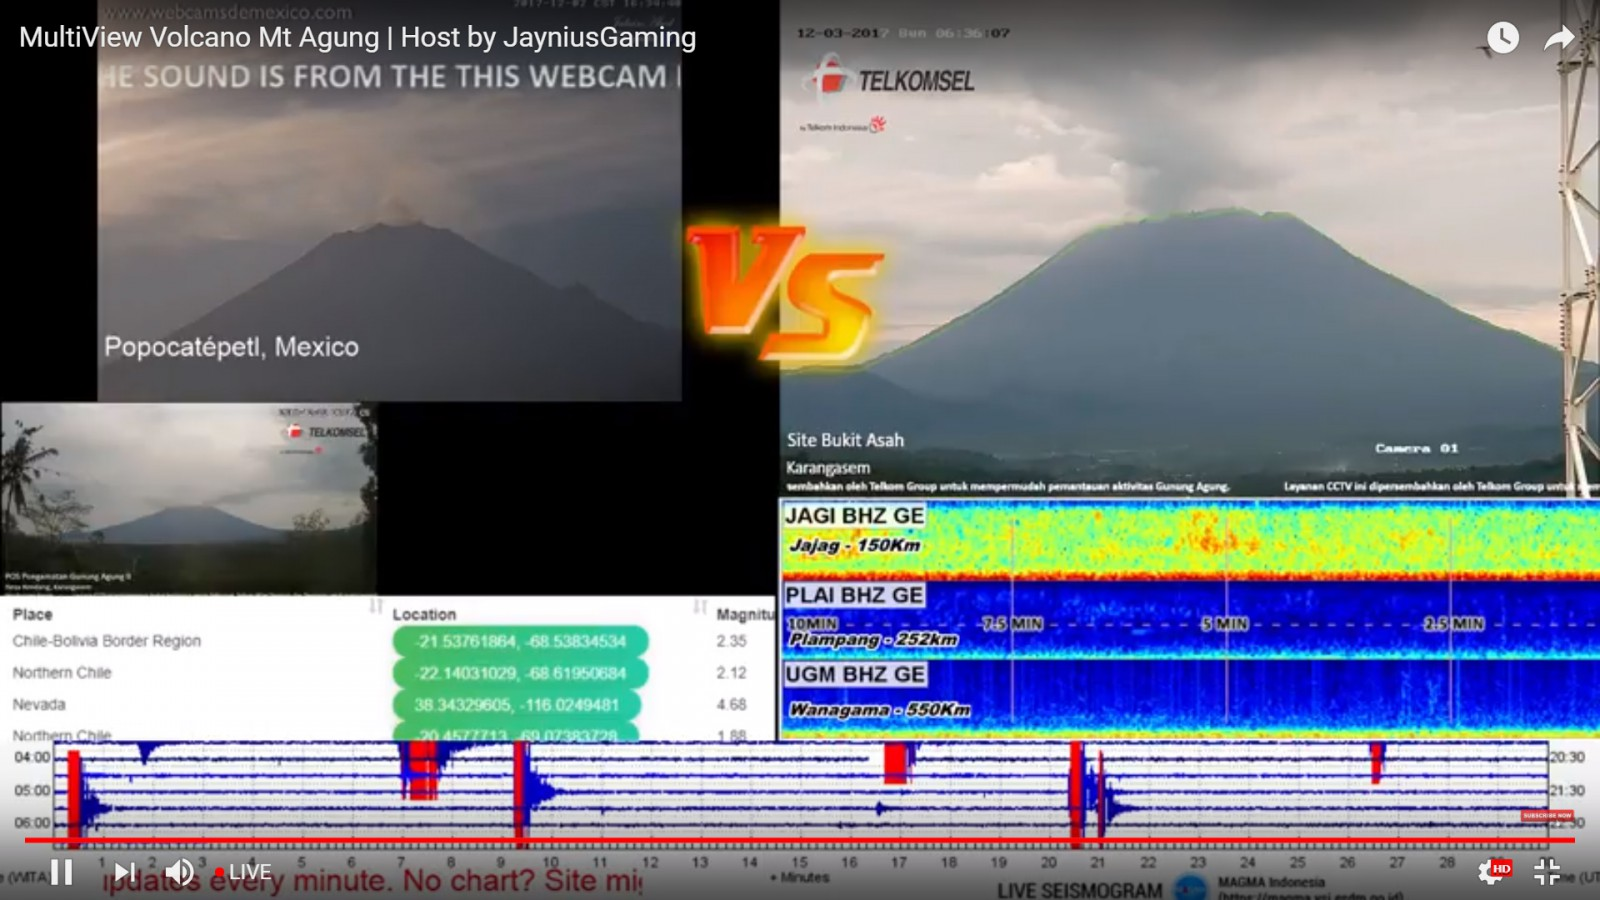 Live video cam feed of Bal's Mount Agung